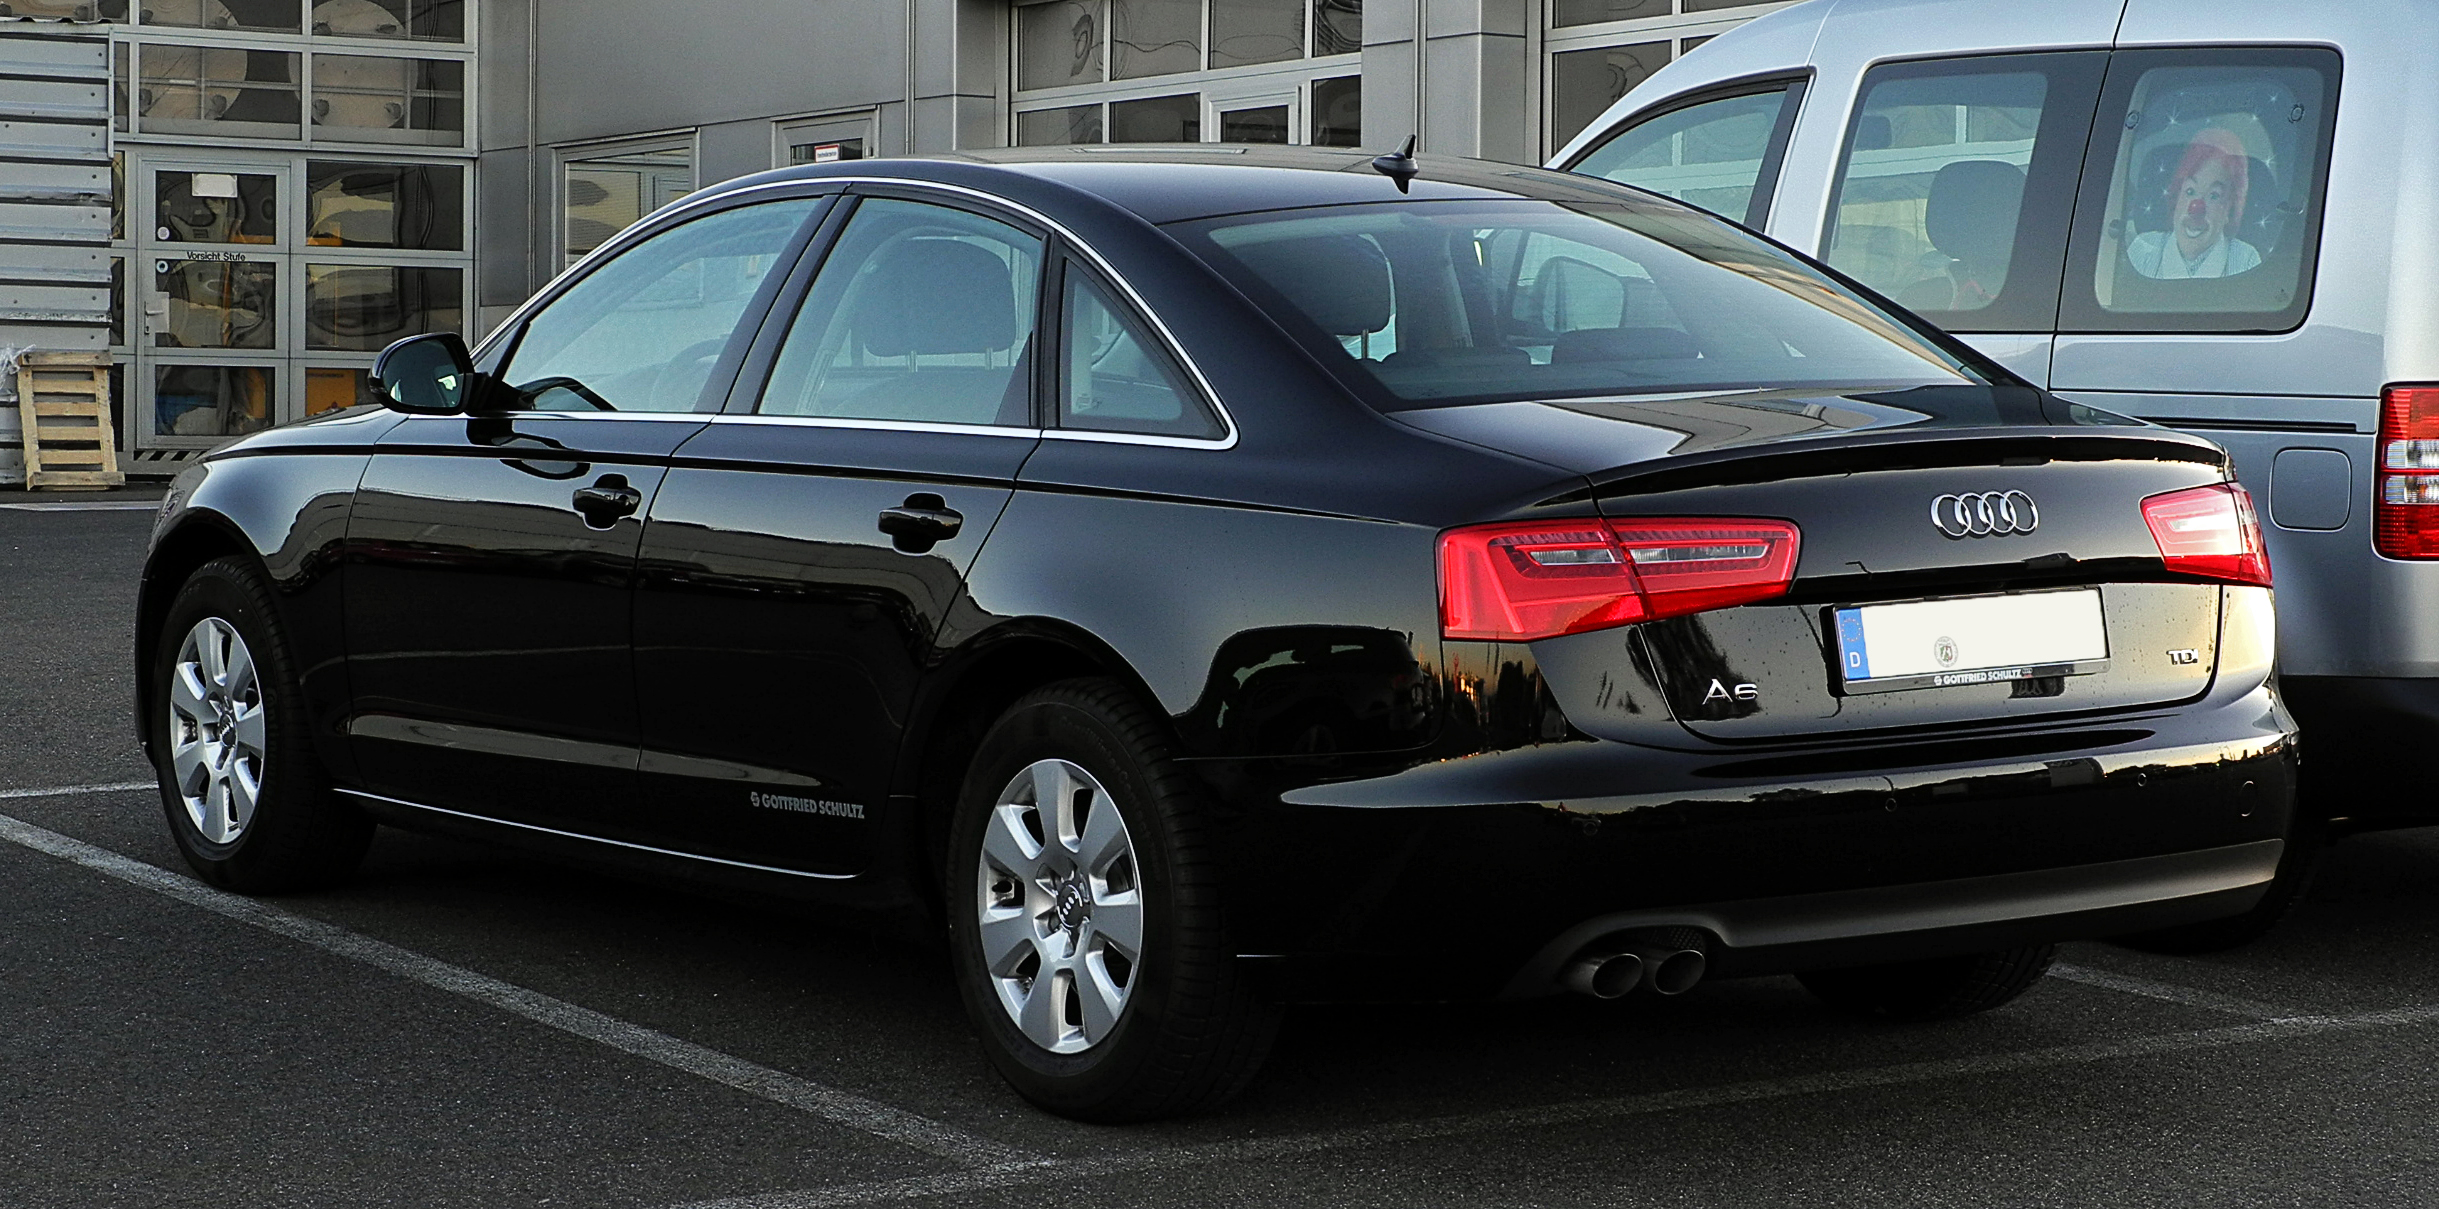 Audi A6 2018 Exterior Rear Side View